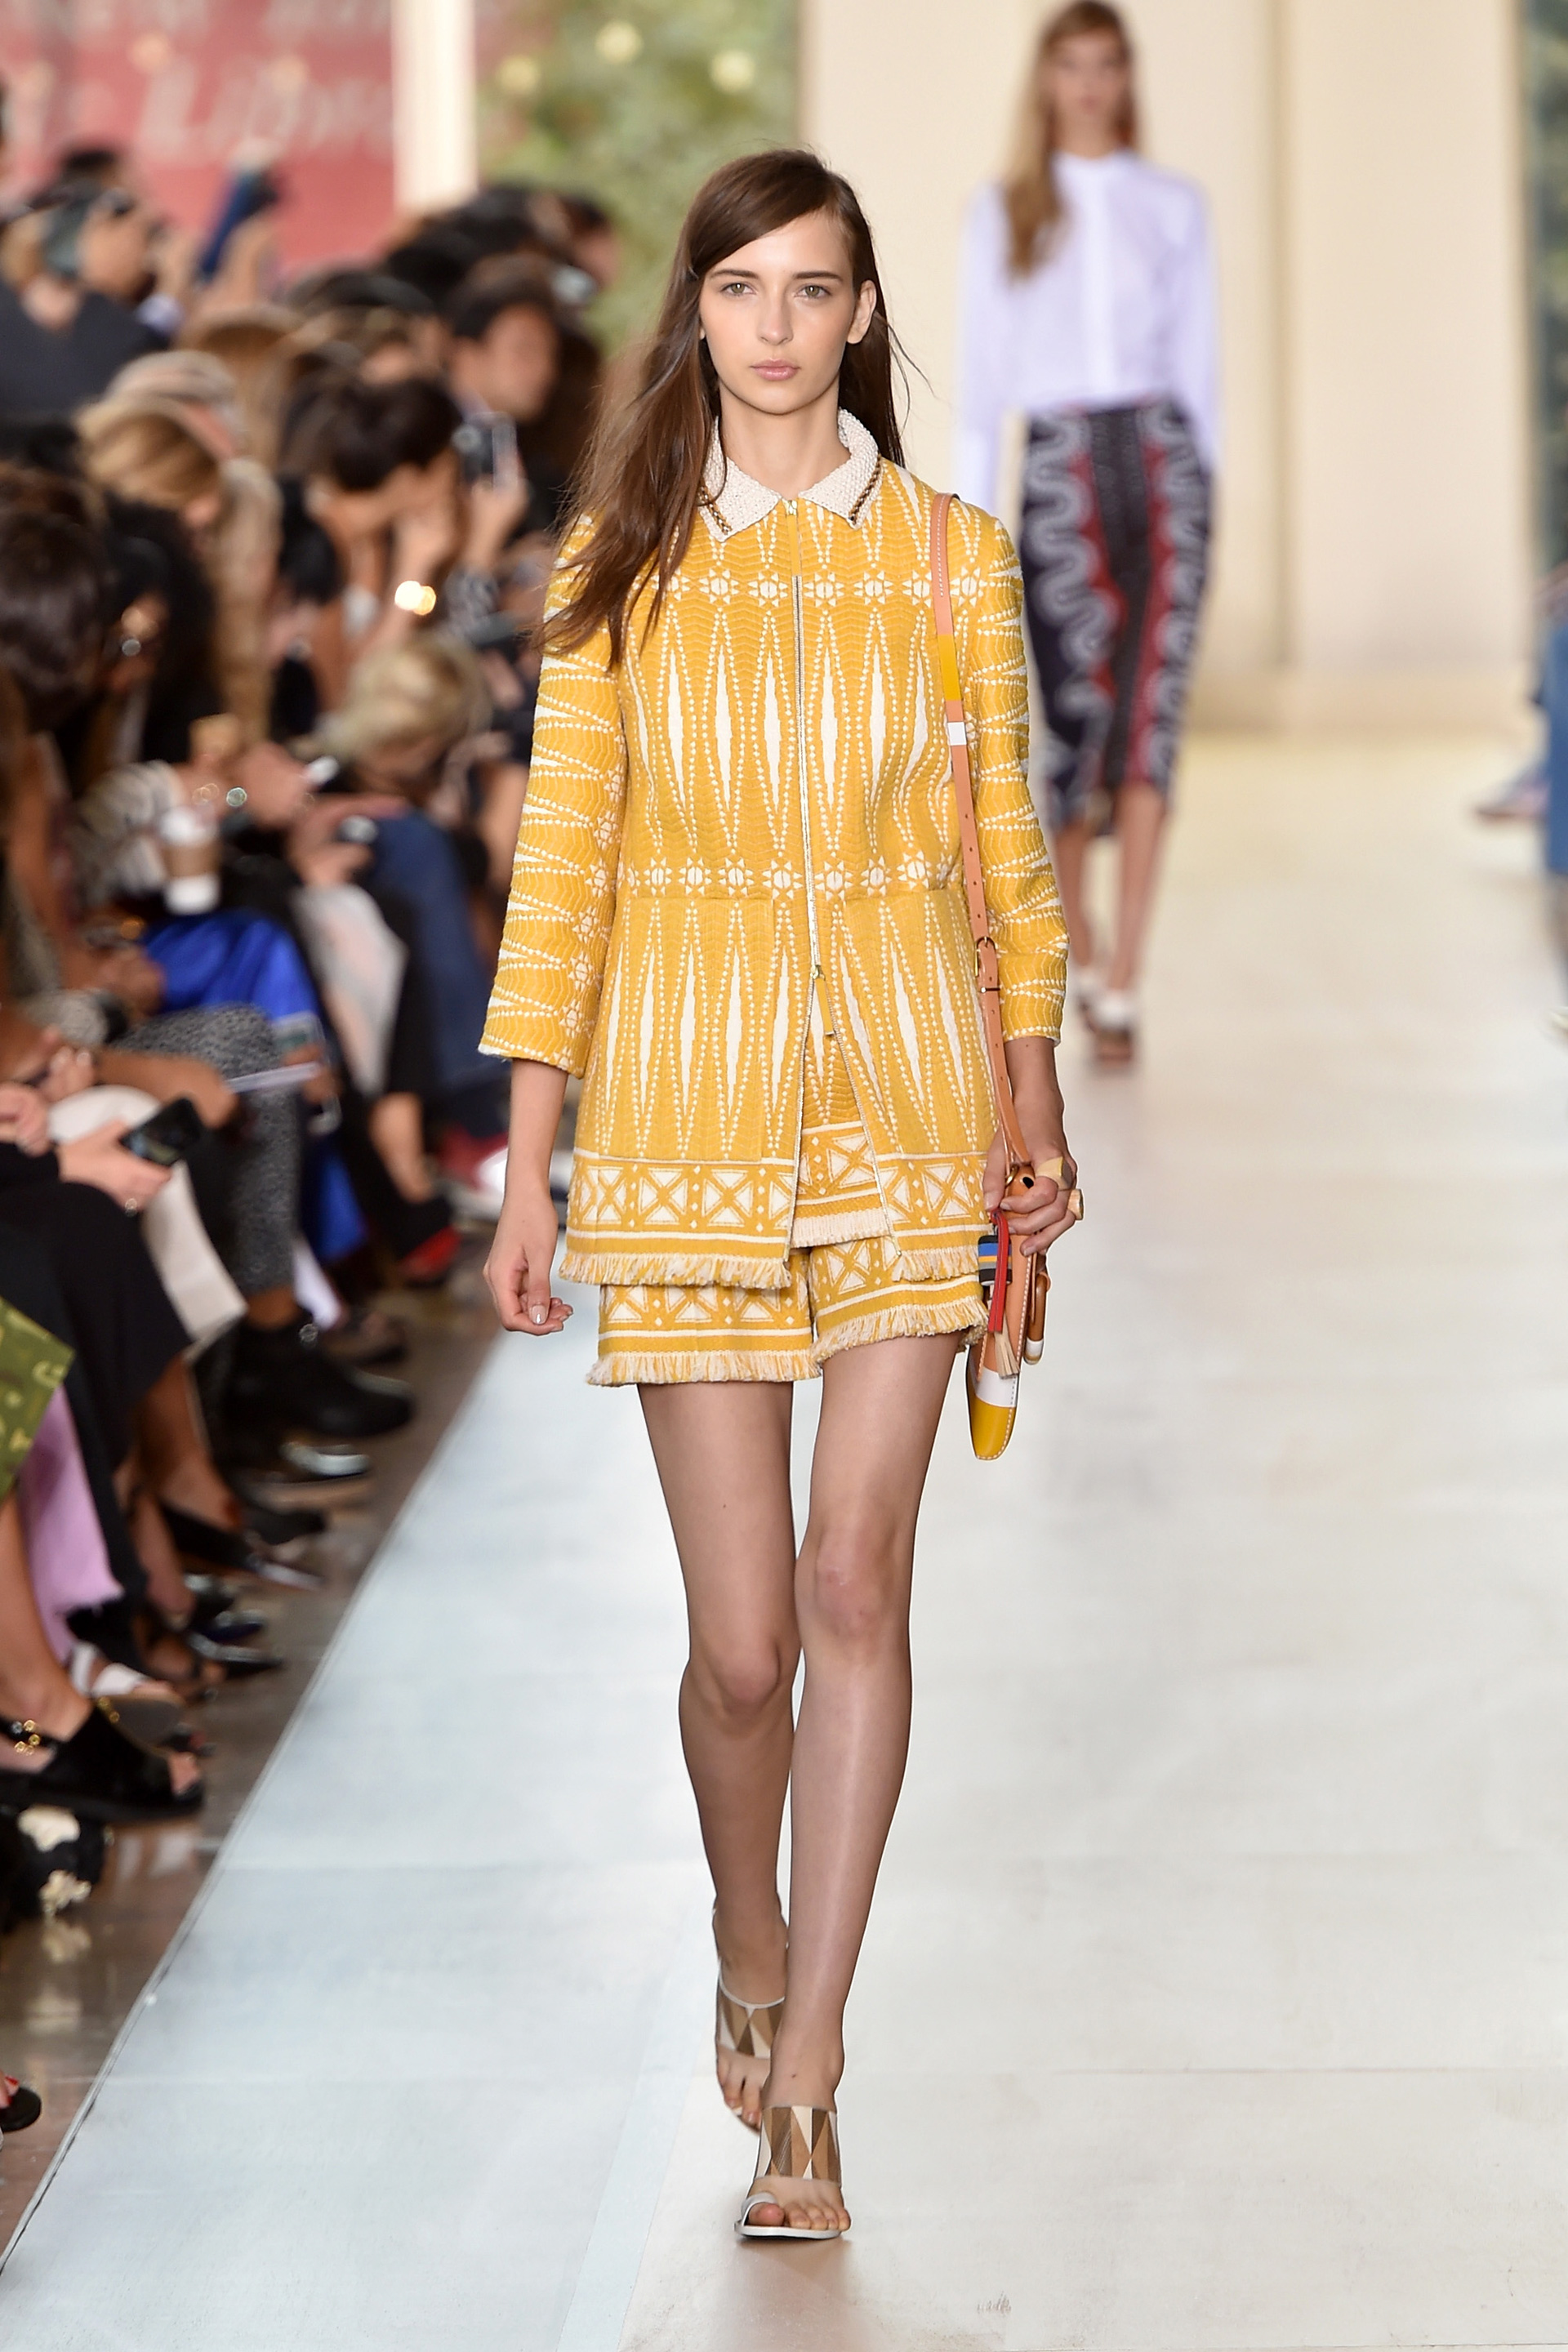 Tory Burch's spring 2015 collection 2